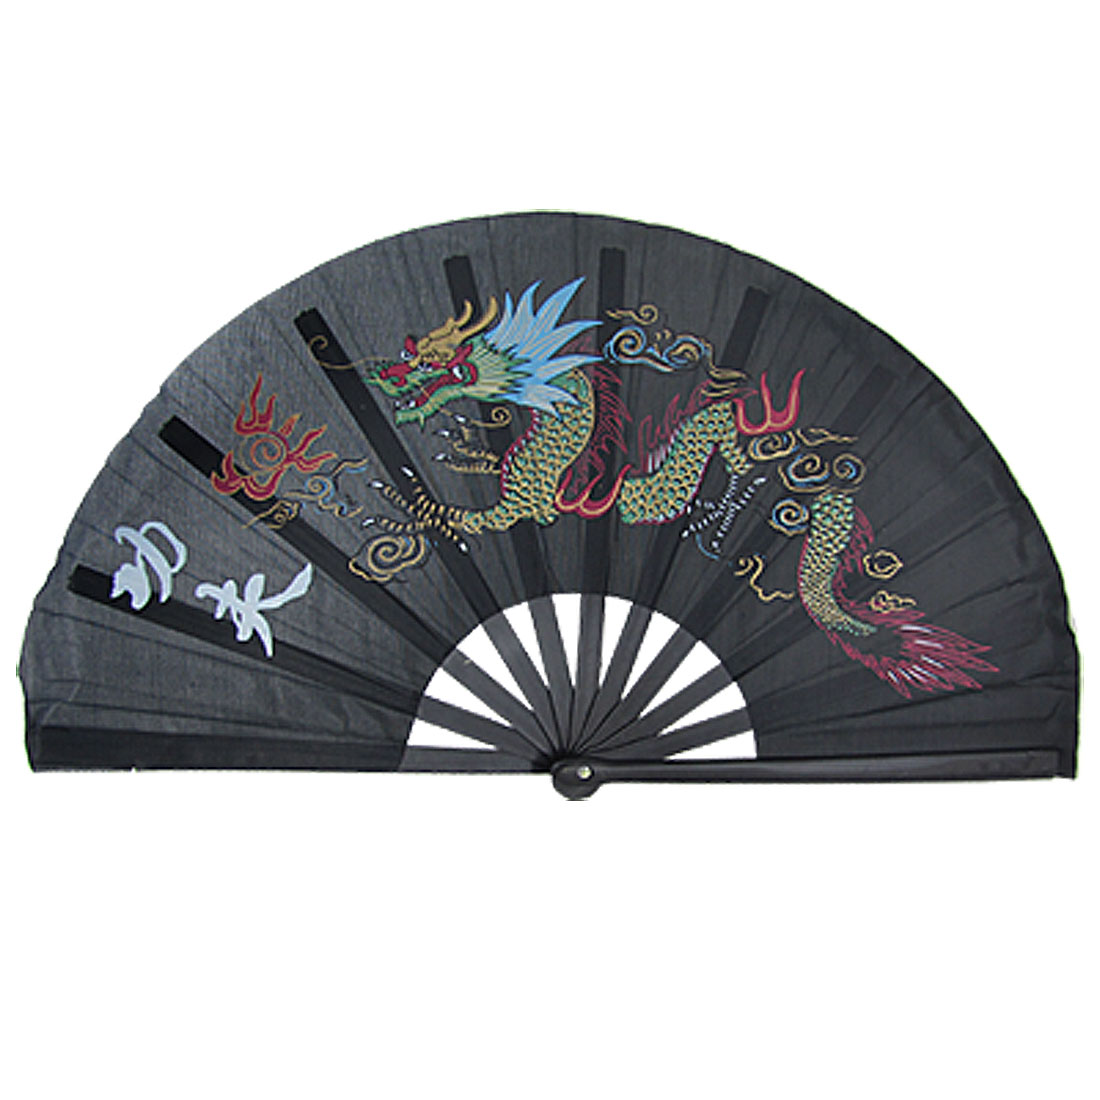 Dragon Hanzi Kongfu Print Plastic Ribs Folding Hand Fan Black